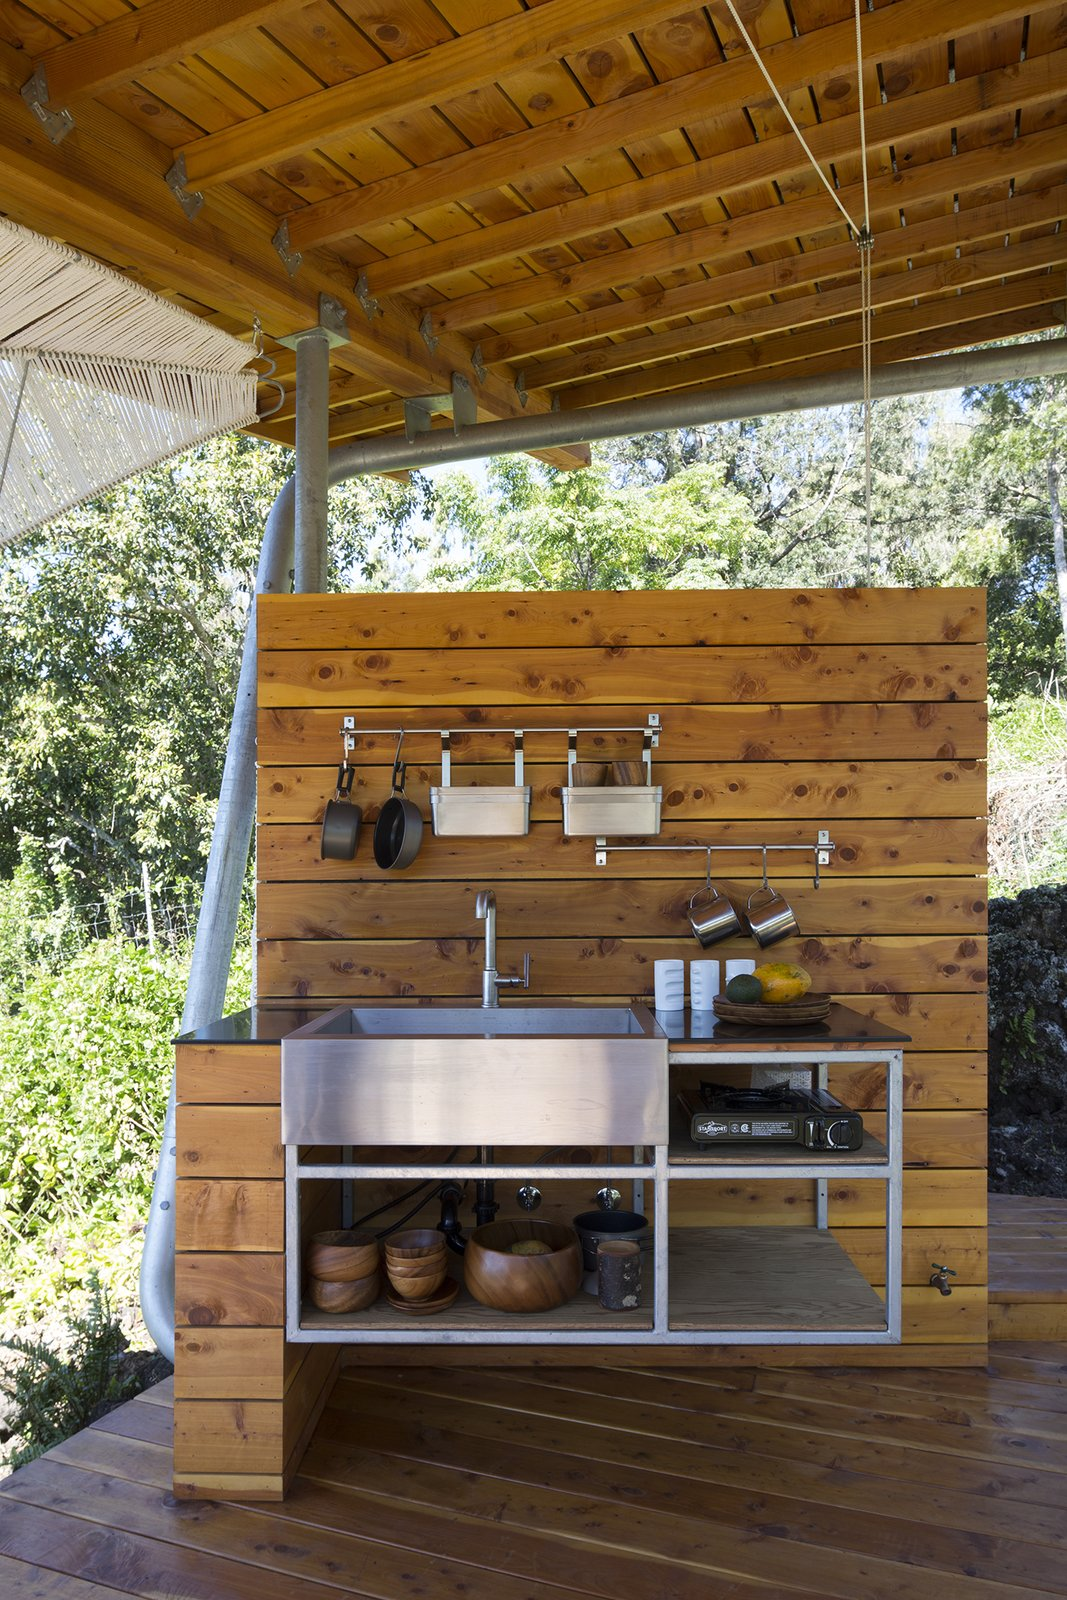 Outdoor and Small Patio, Porch, Deck The kitchen contains a Kohler sink and pot racks from IKEA.  Maui, Hawaii Dwell Magazine : September / October 2017  Photo 8 of 9 in Two Tiny Pavilions Respectfully Perch Atop a Lava Flow on Maui